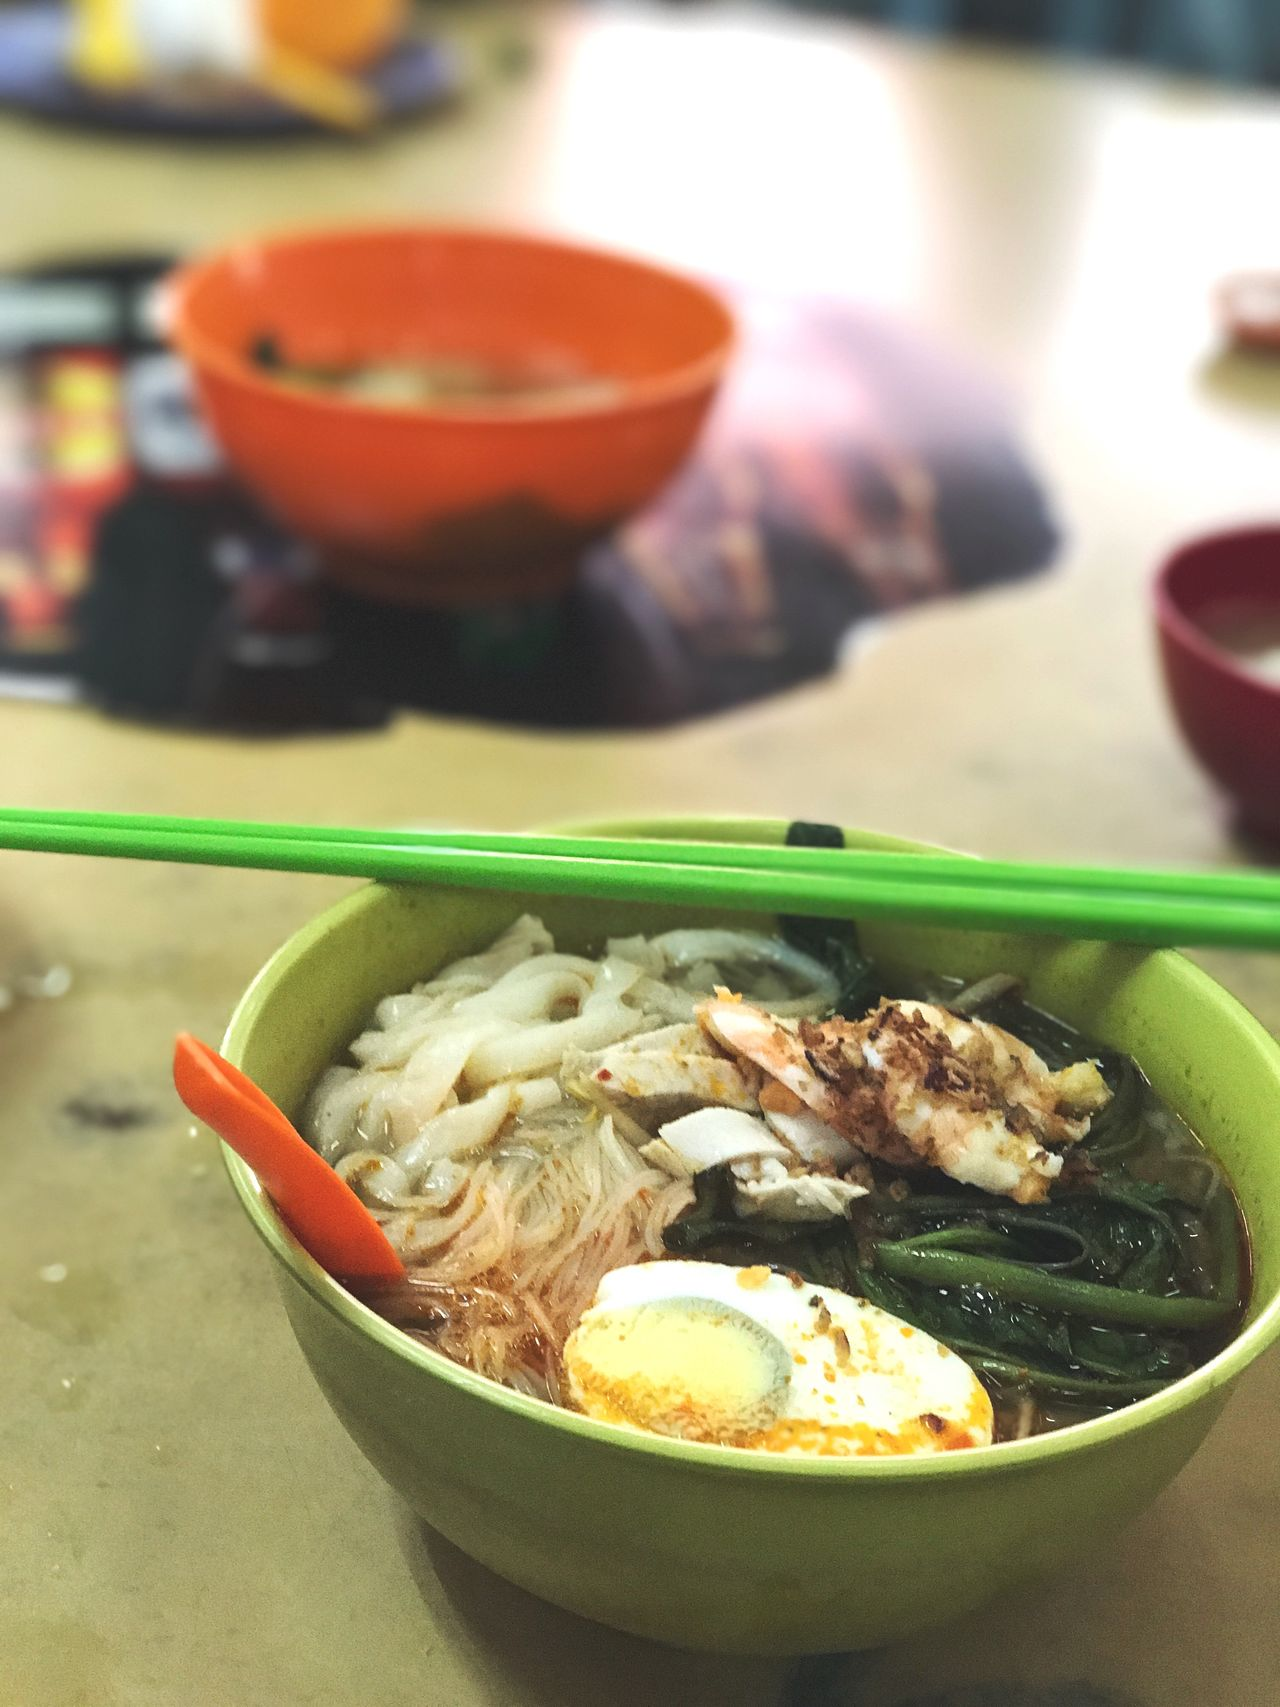 Prawn Noodles Chinese Food Bowl Food And Drink Noodles Food Soup Ramen Noodles Noodle Soup Indoors  Healthy Eating Table Freshness No People Japanese Food Ready-to-eat Focus On Foreground Chopsticks Serving Size Close-up Soup Bowl Prawn Egg Chinese Asian